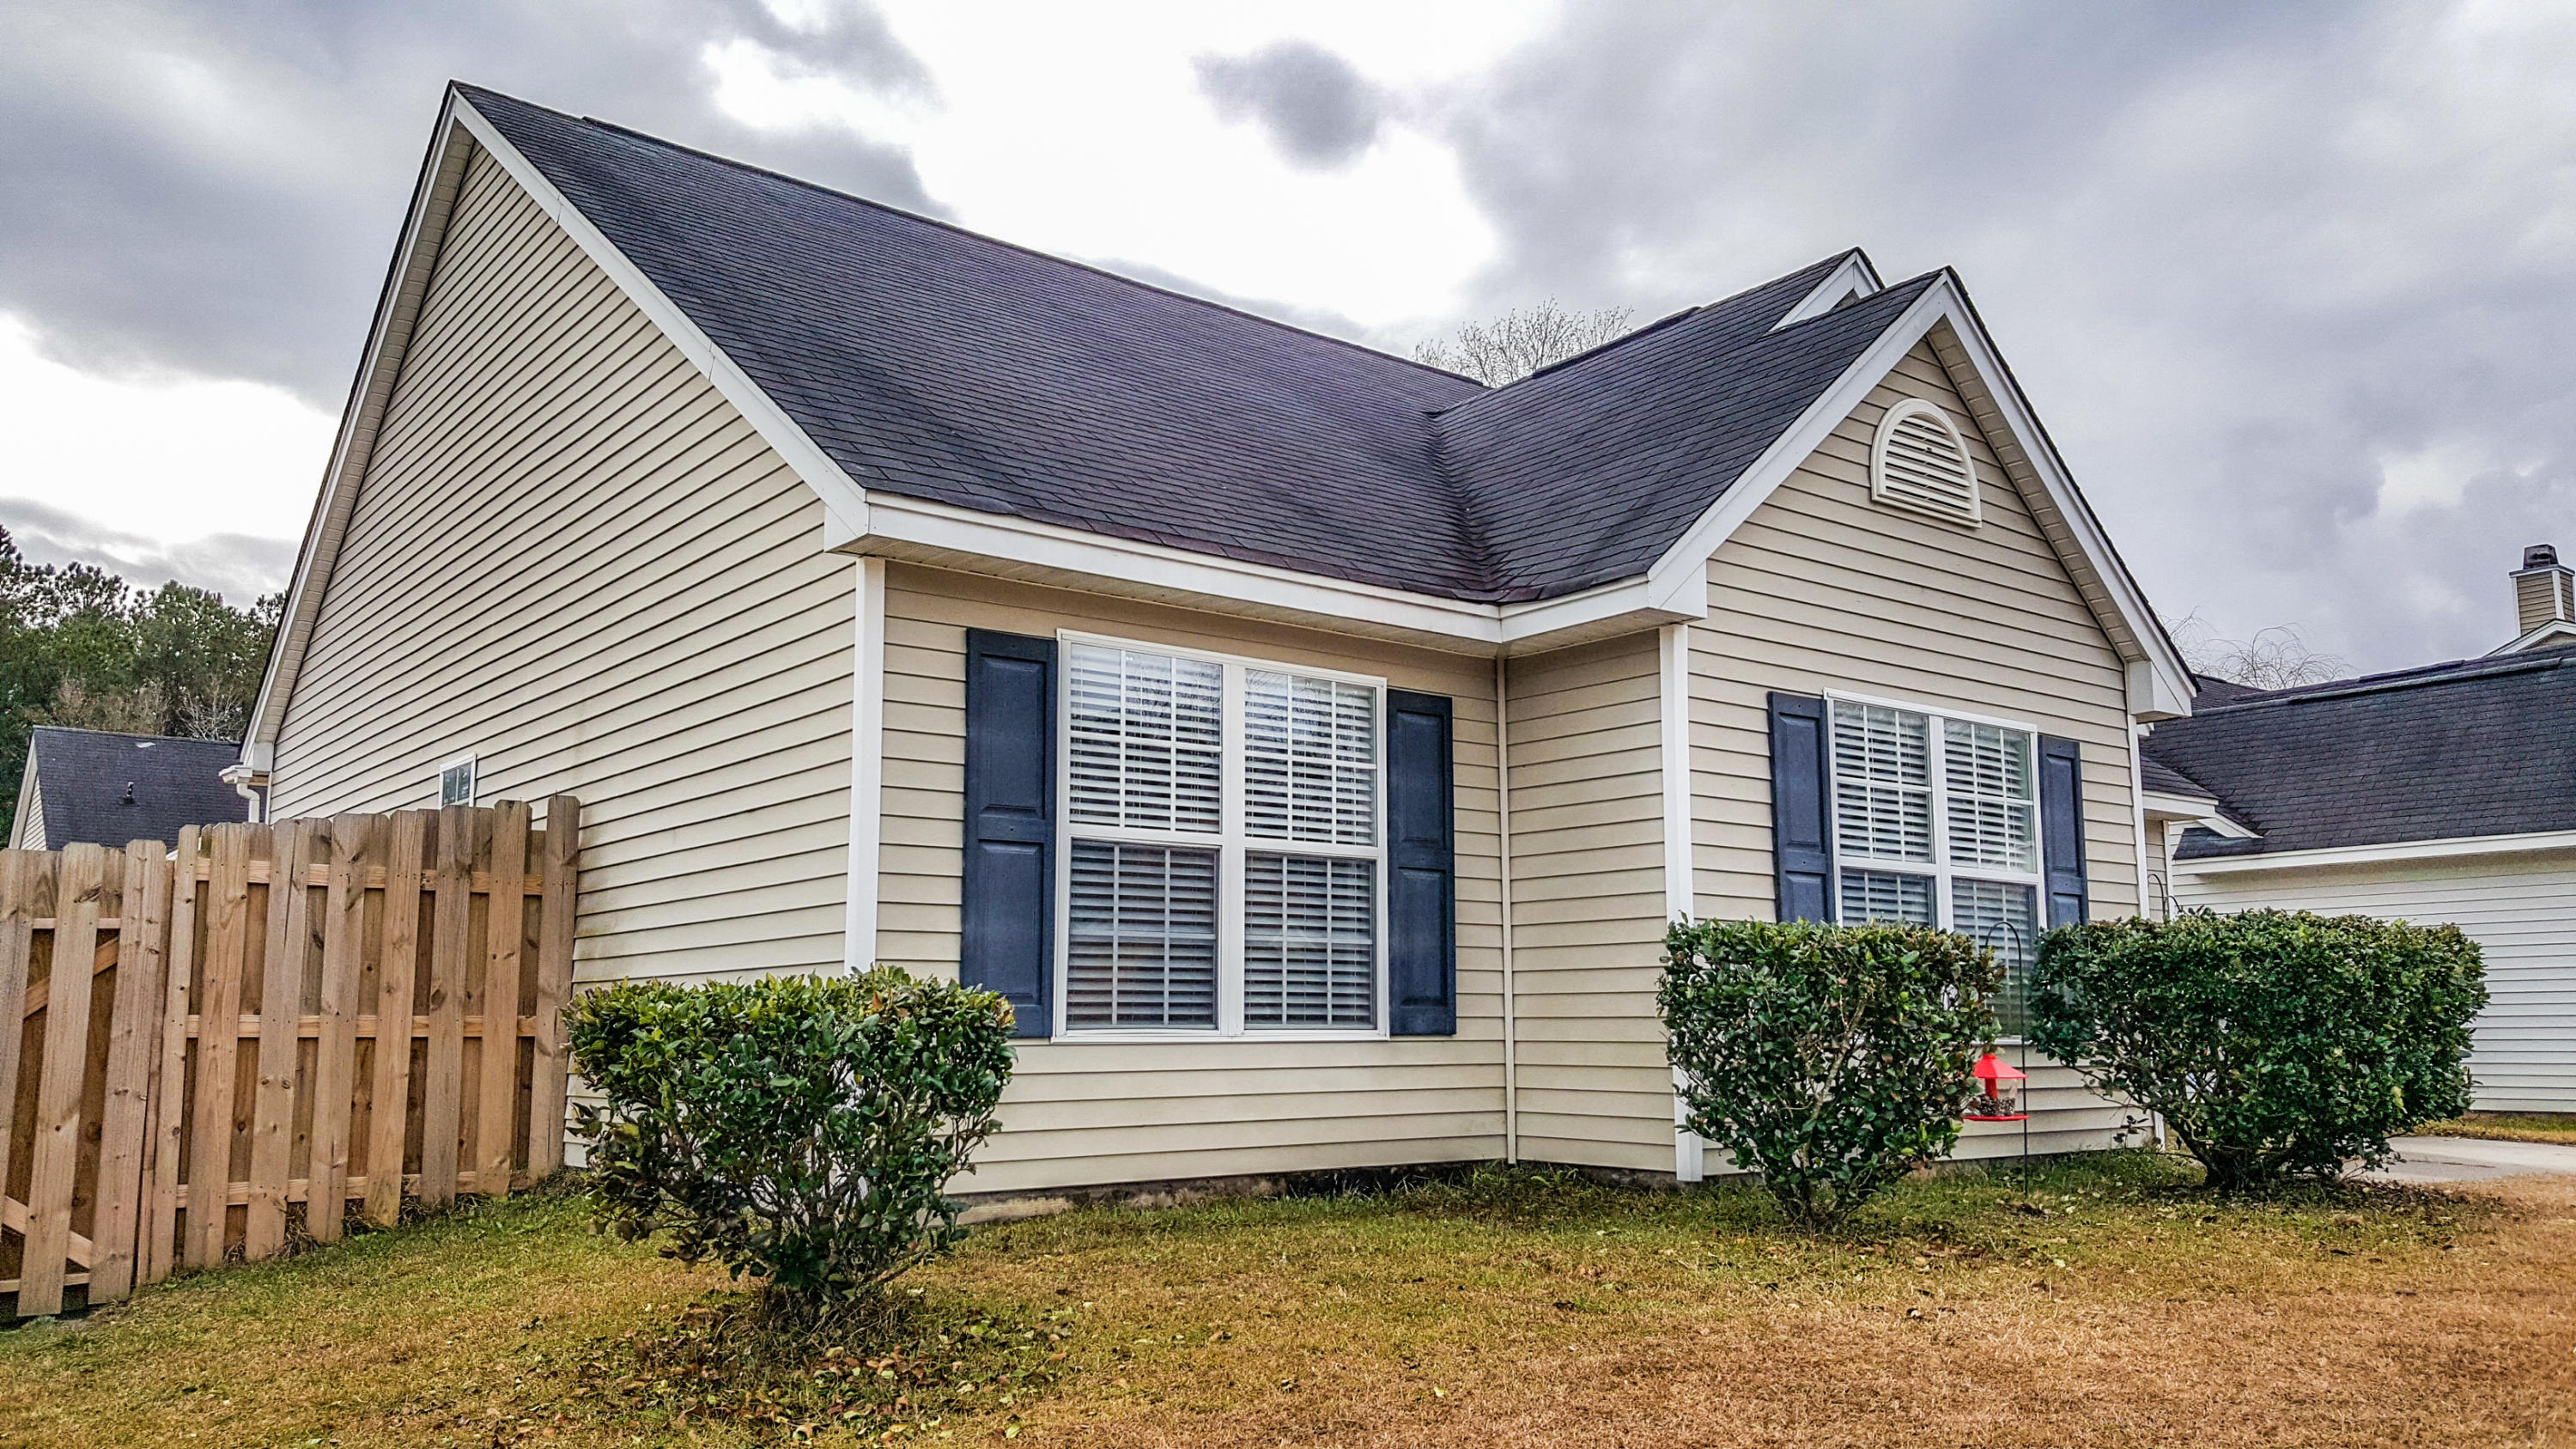 Home for sale 1601 Ashley Court, Ashley Plantation, Berkeley Triangle, SC